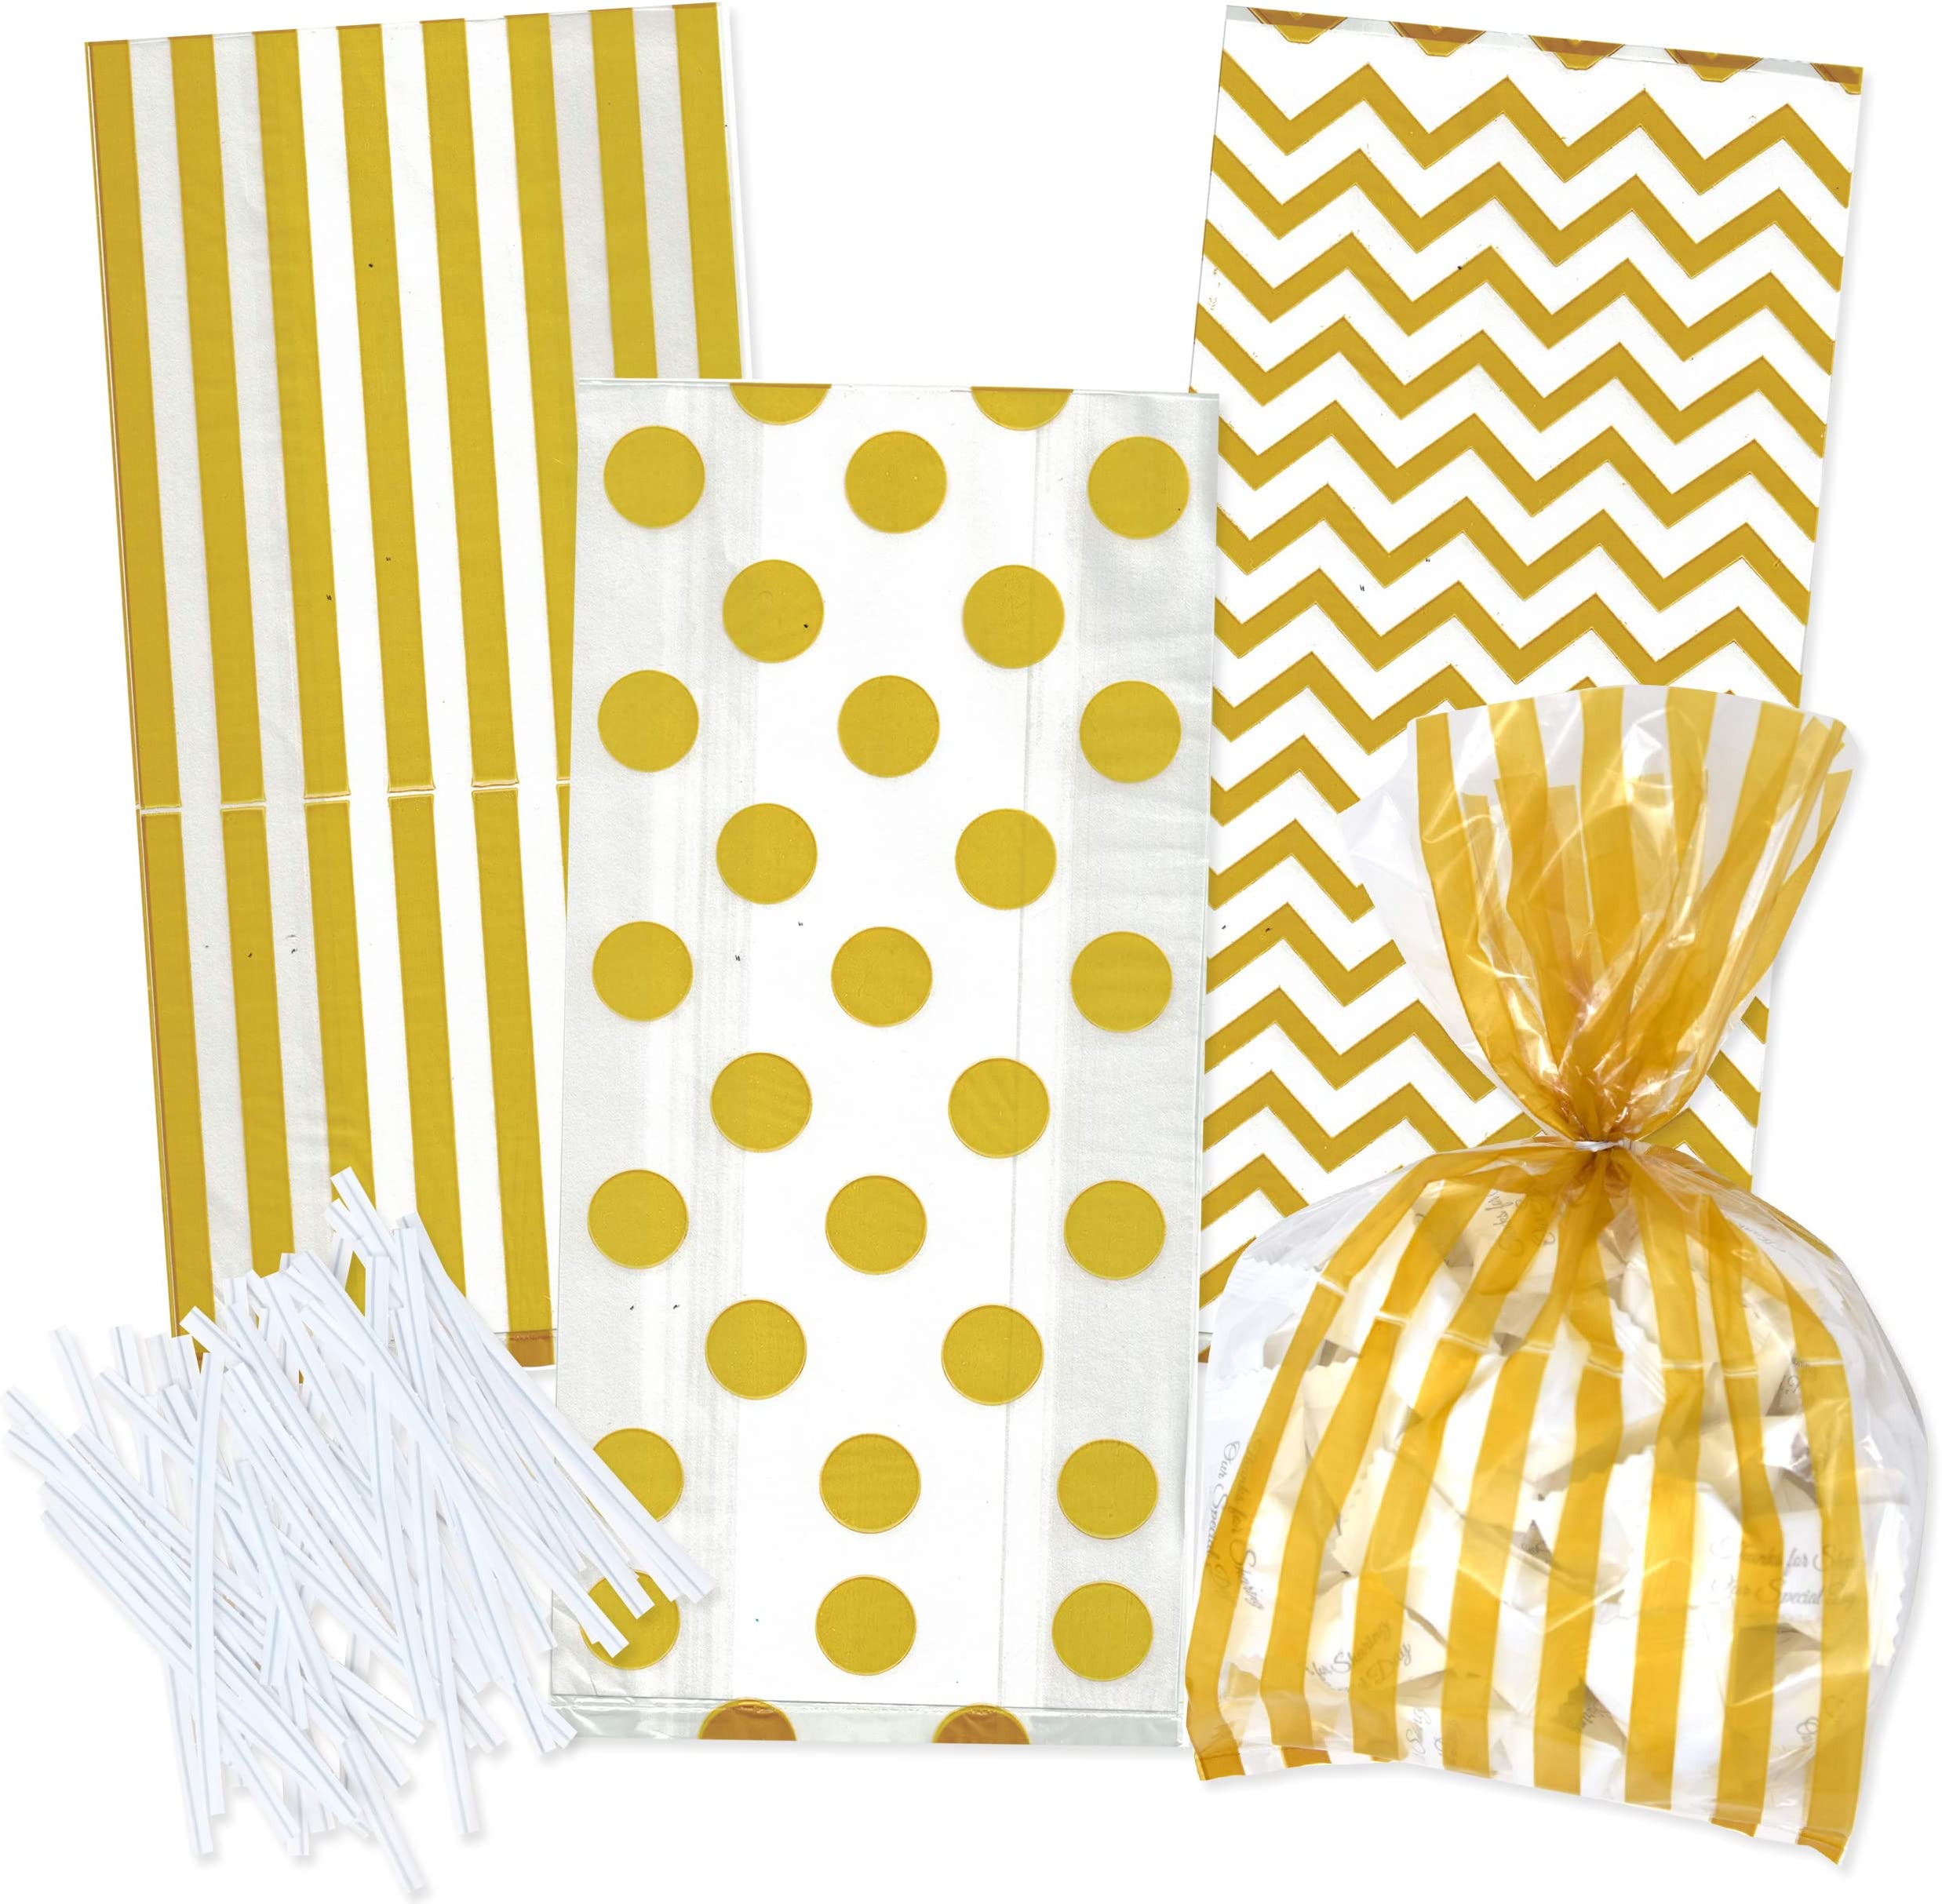 Free Shipping! Medium Gold /& White Candy Stripe 4x2x9 Cello Cellophane Party Treat Food Snack Bags